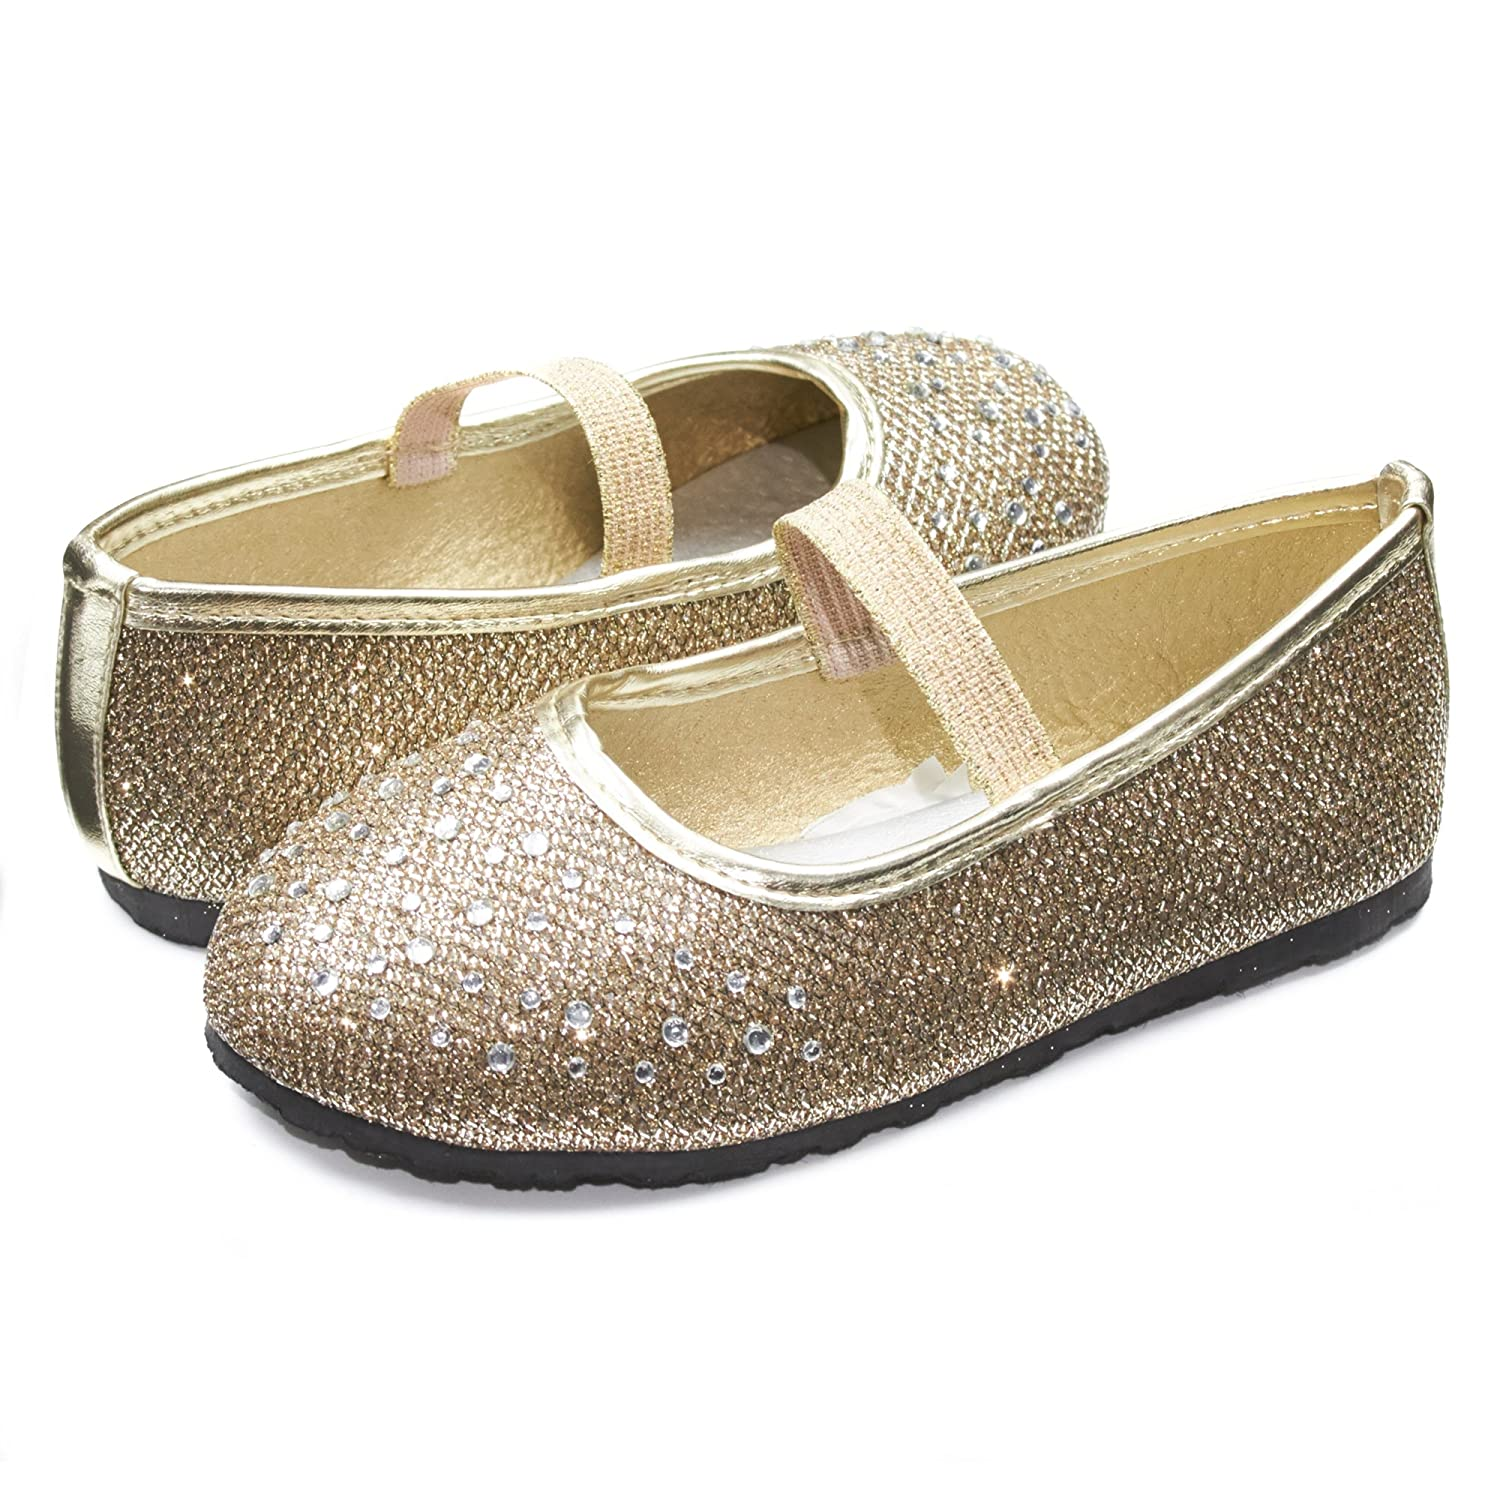 Sara Z Kids Toddlers Girls Glitter Mesh Ballet Flat Slip On Shoes With Rhinestones and Elastic Strap